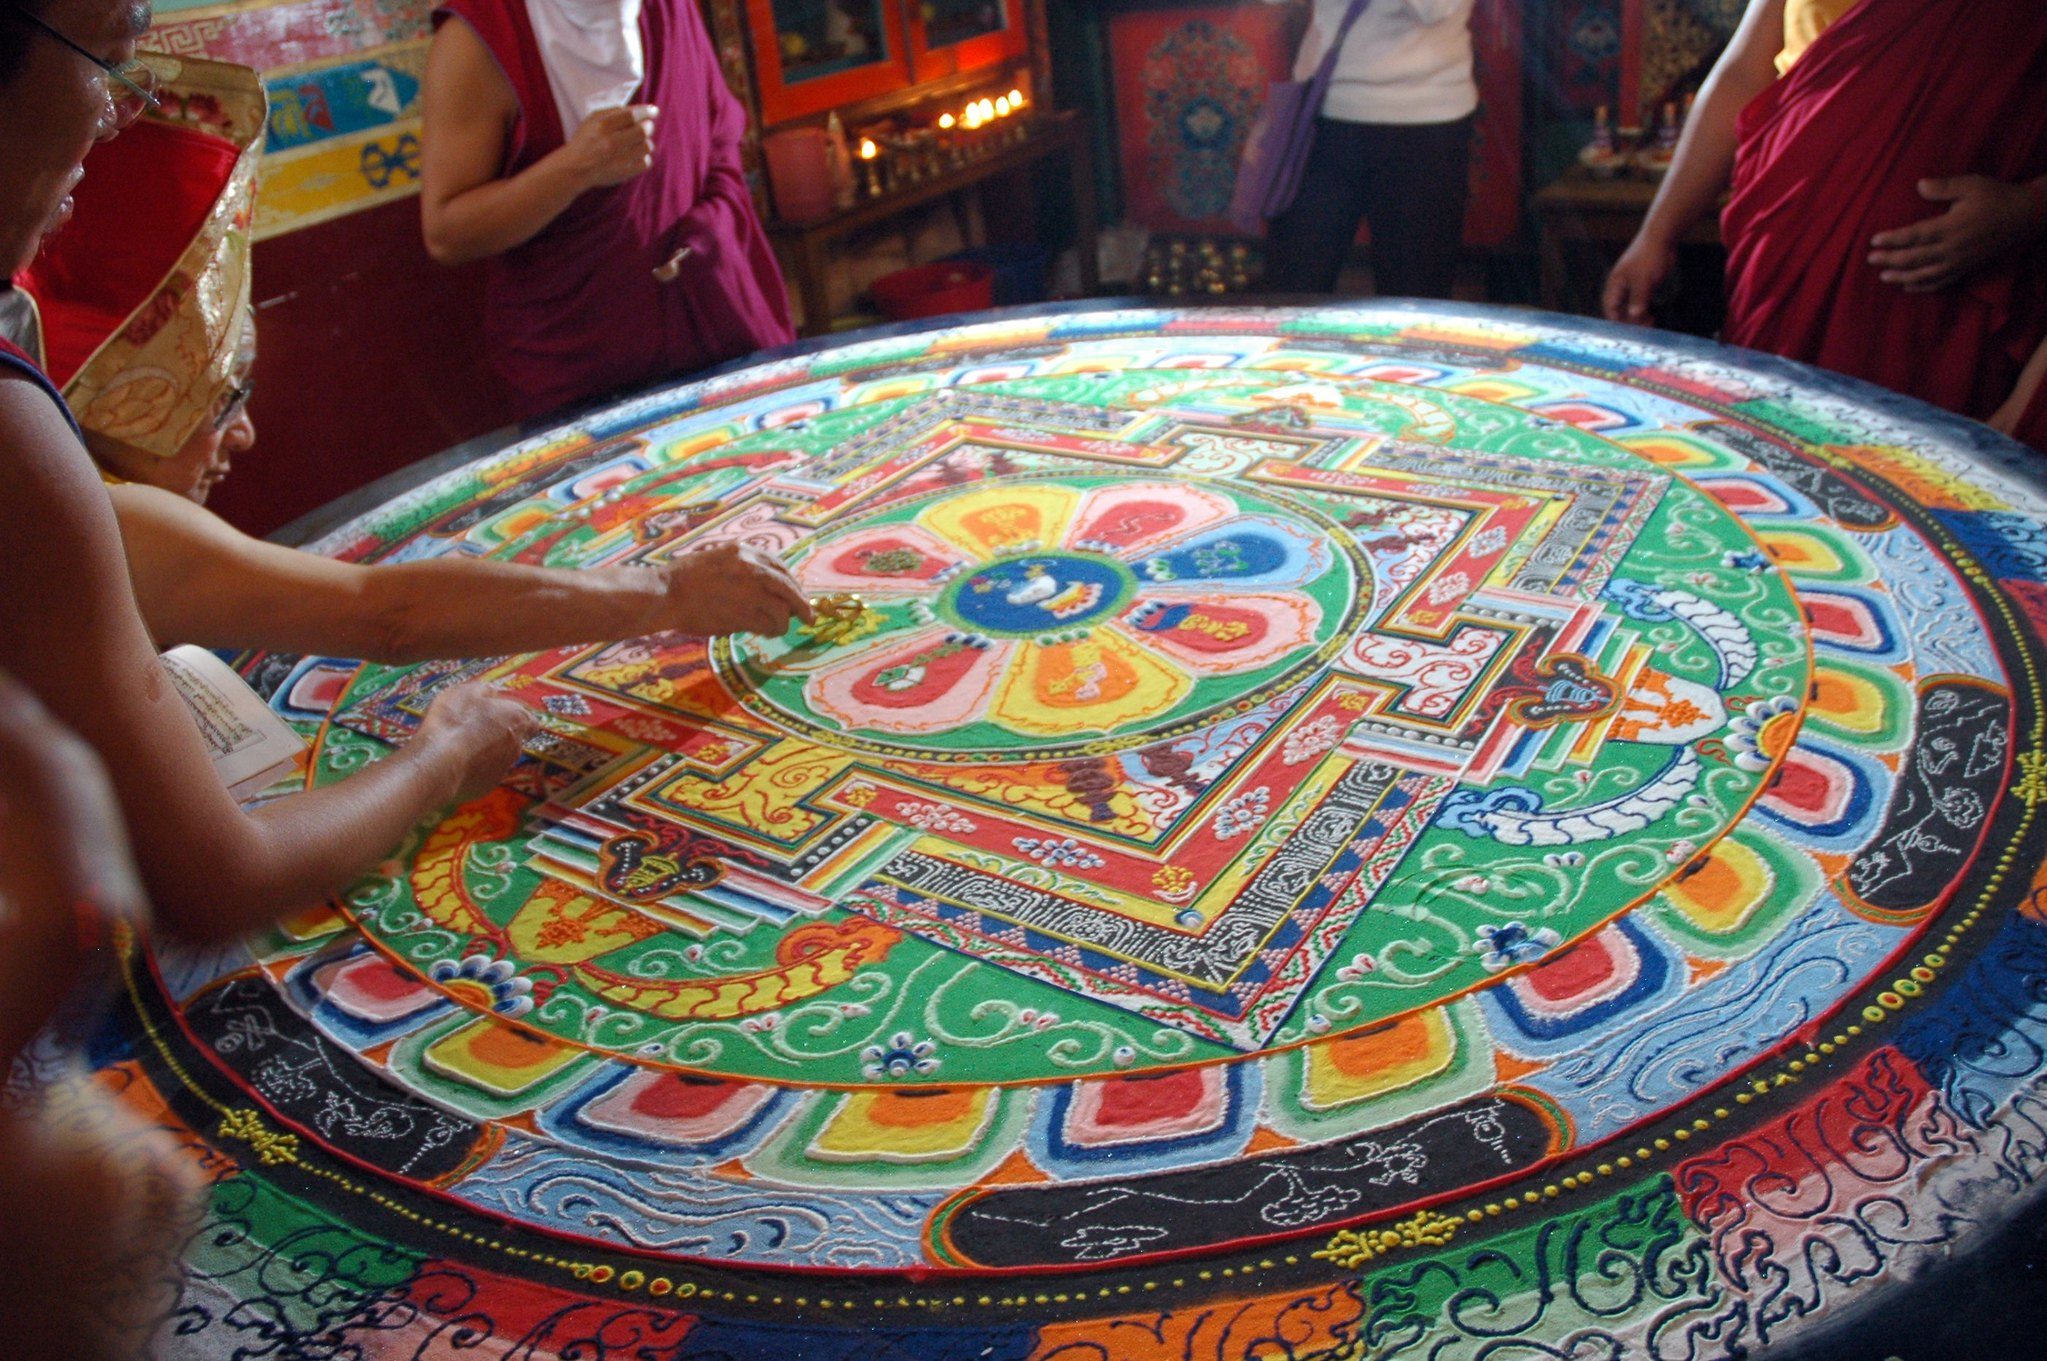 A Buddhist sand mandala. Photo: Wonderlane/Flickr